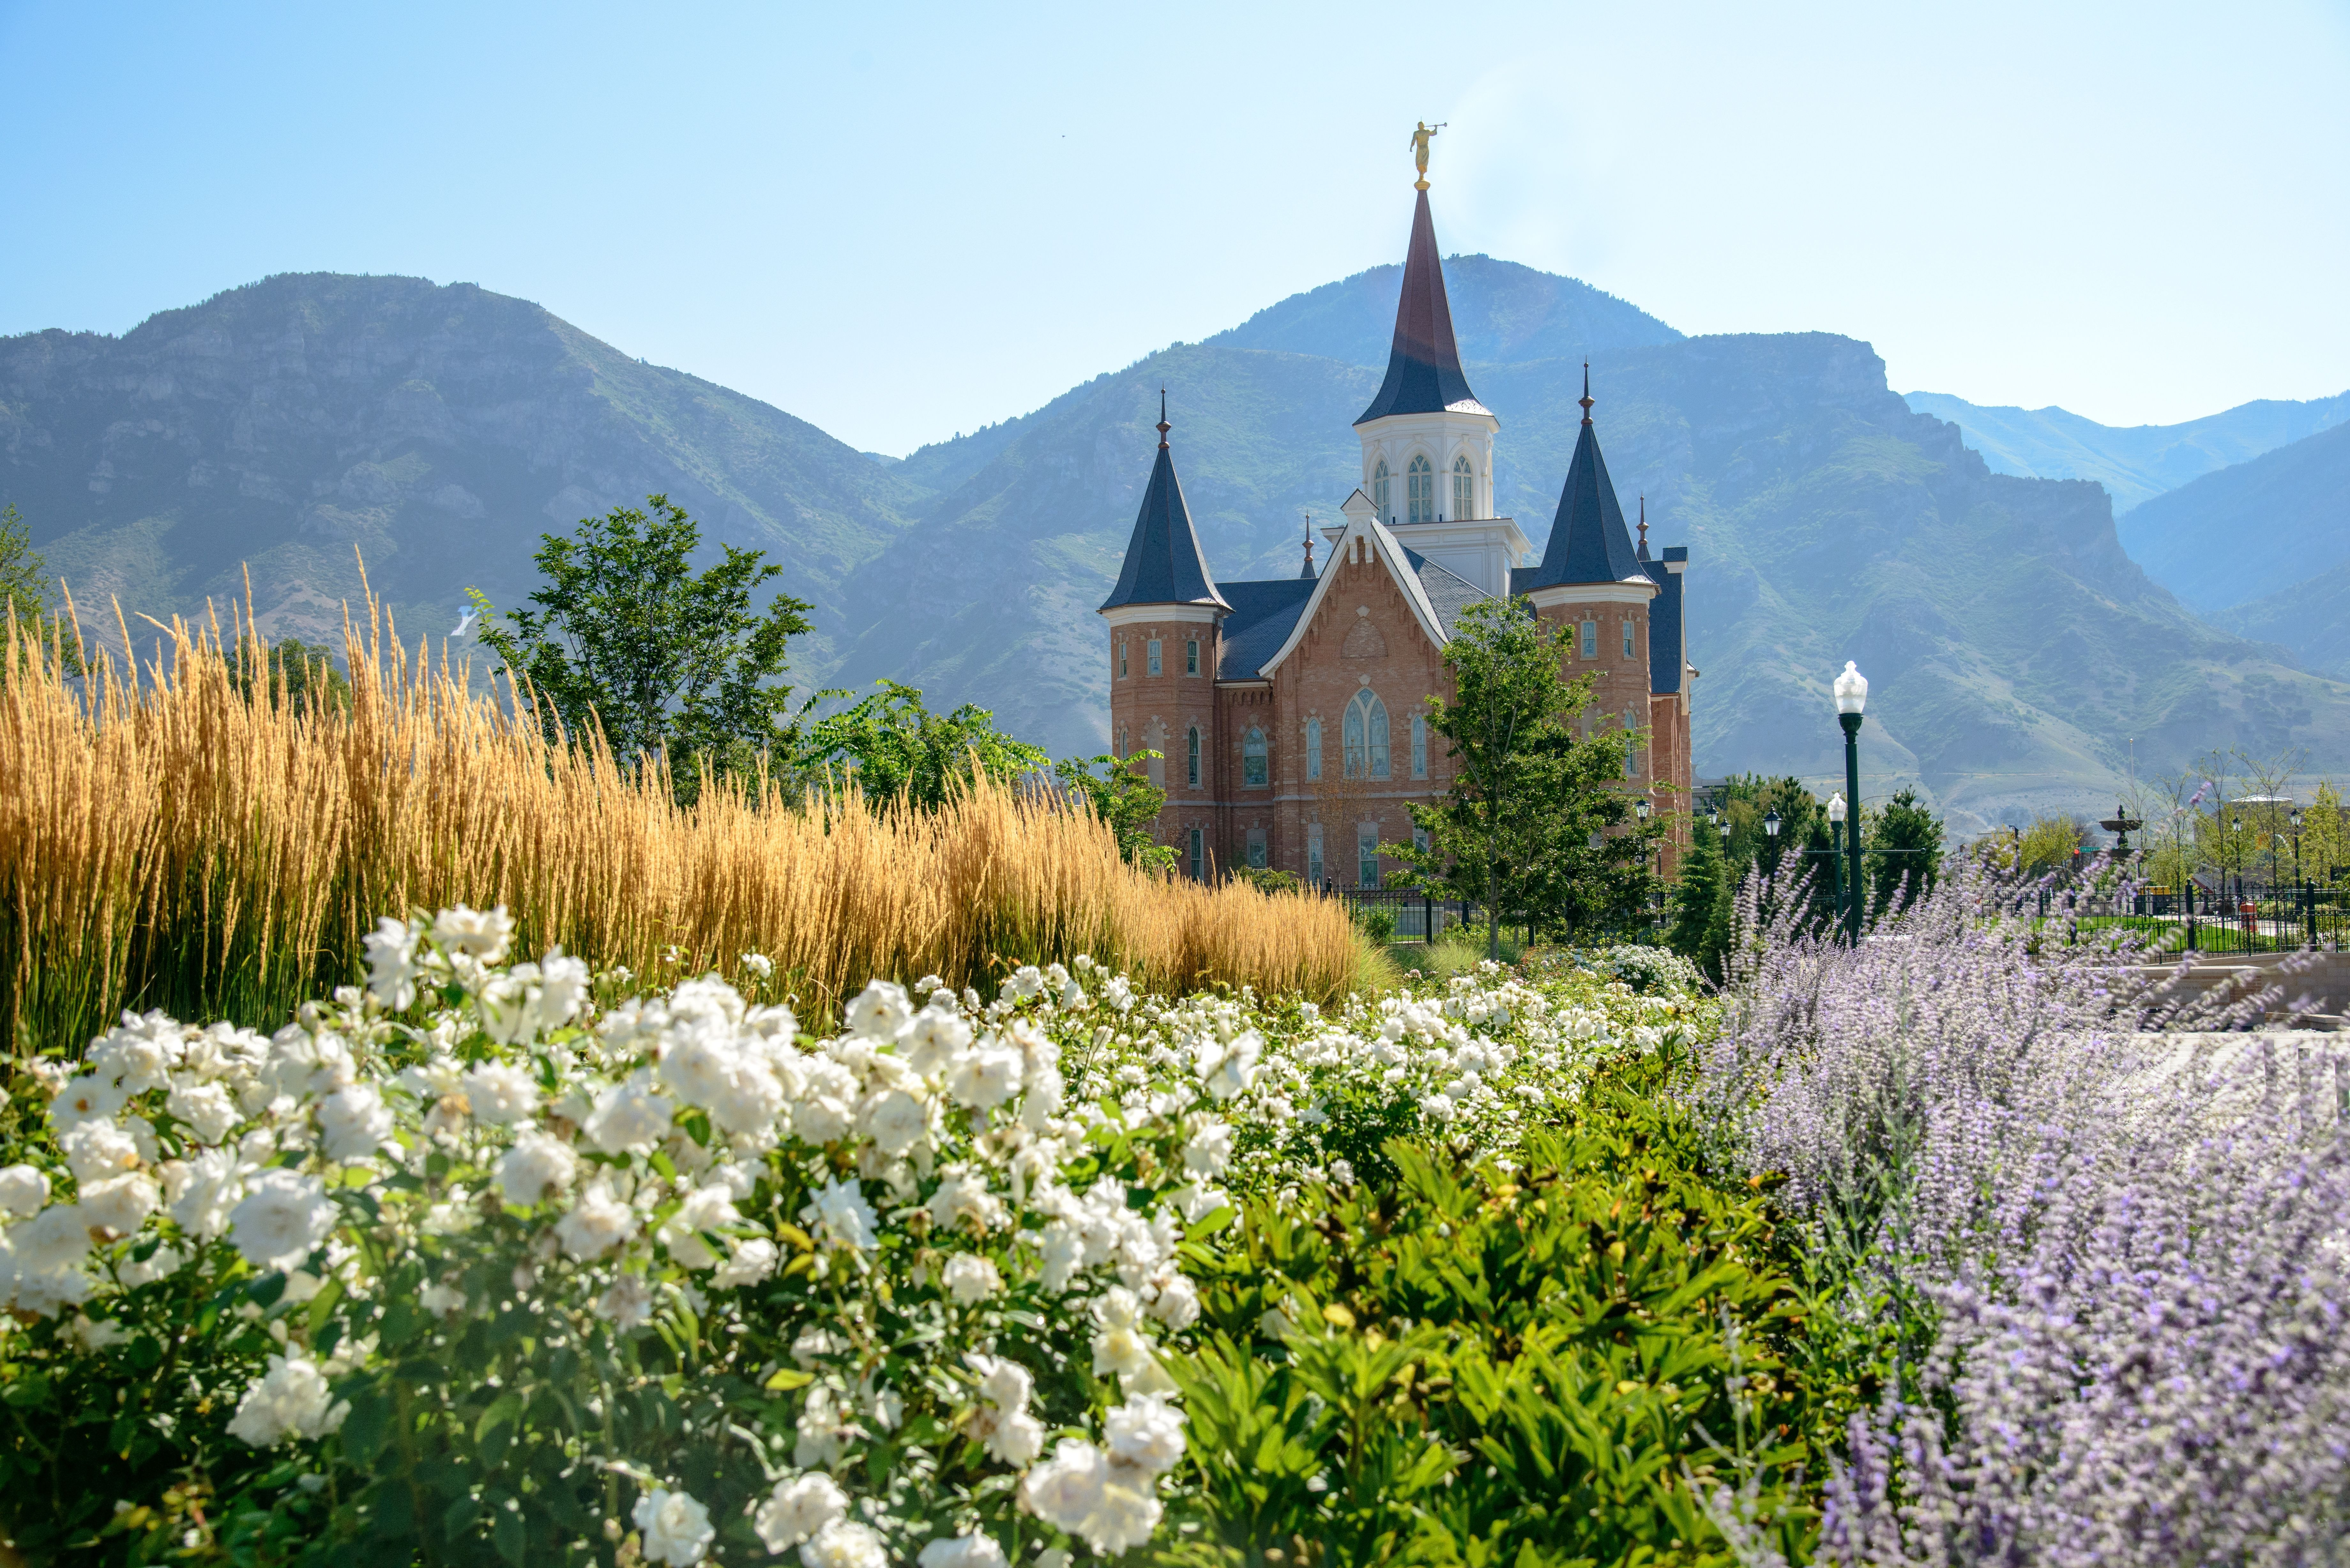 Vegetation around the Provo City Center Temple, with mountains in the background.